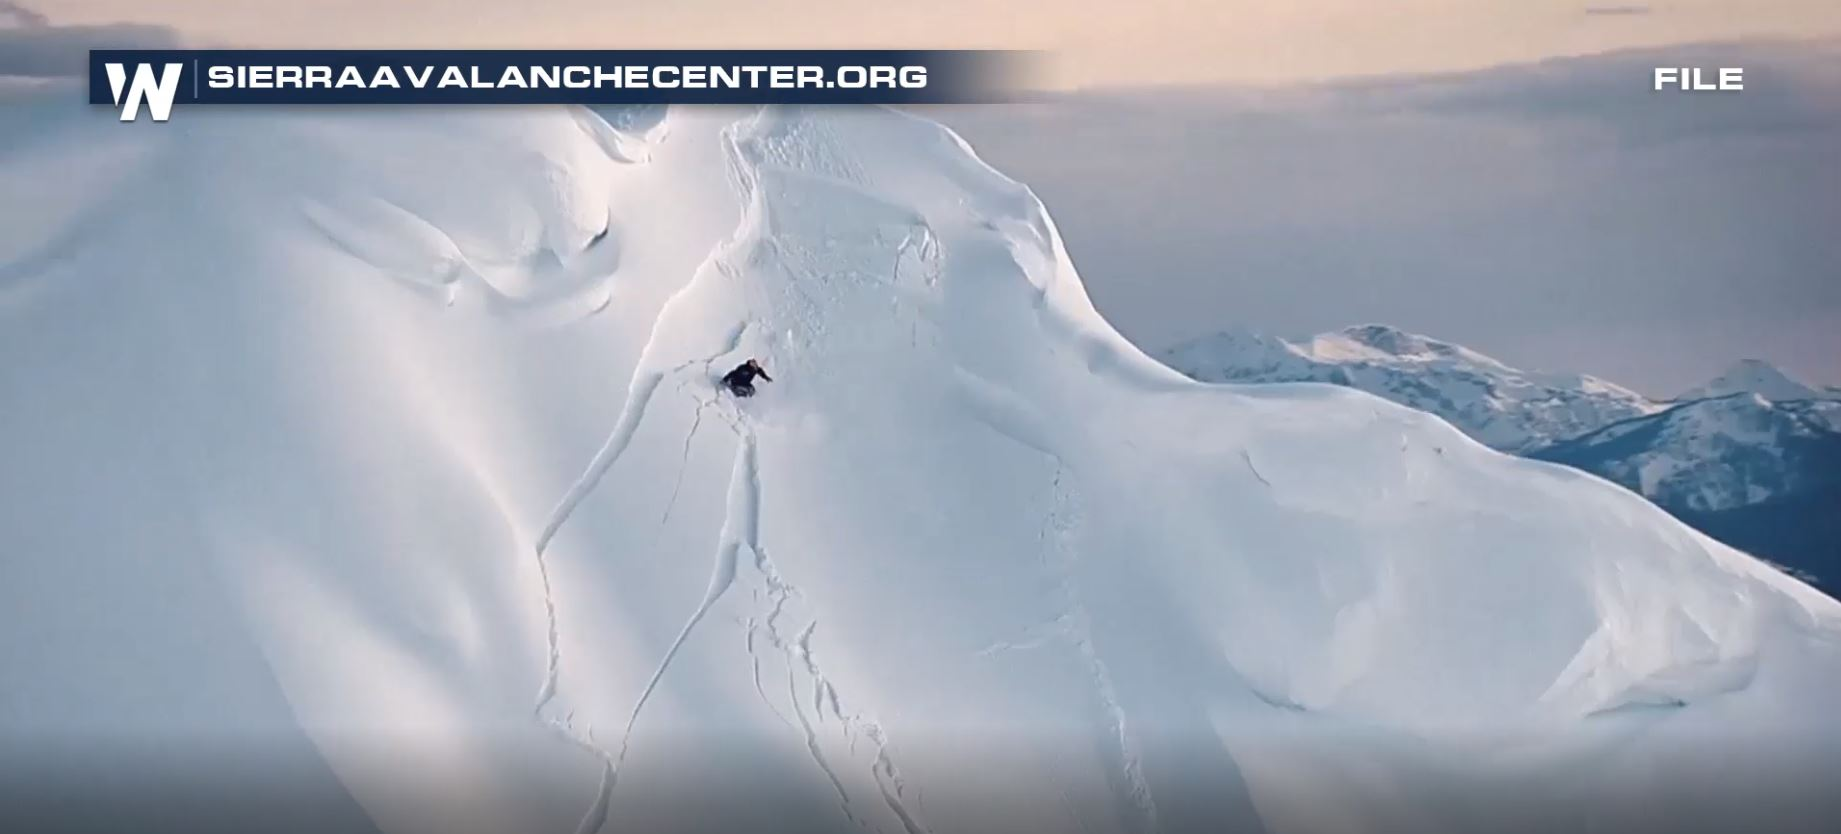 Tips on Identifying Avalanche-Prone Areas